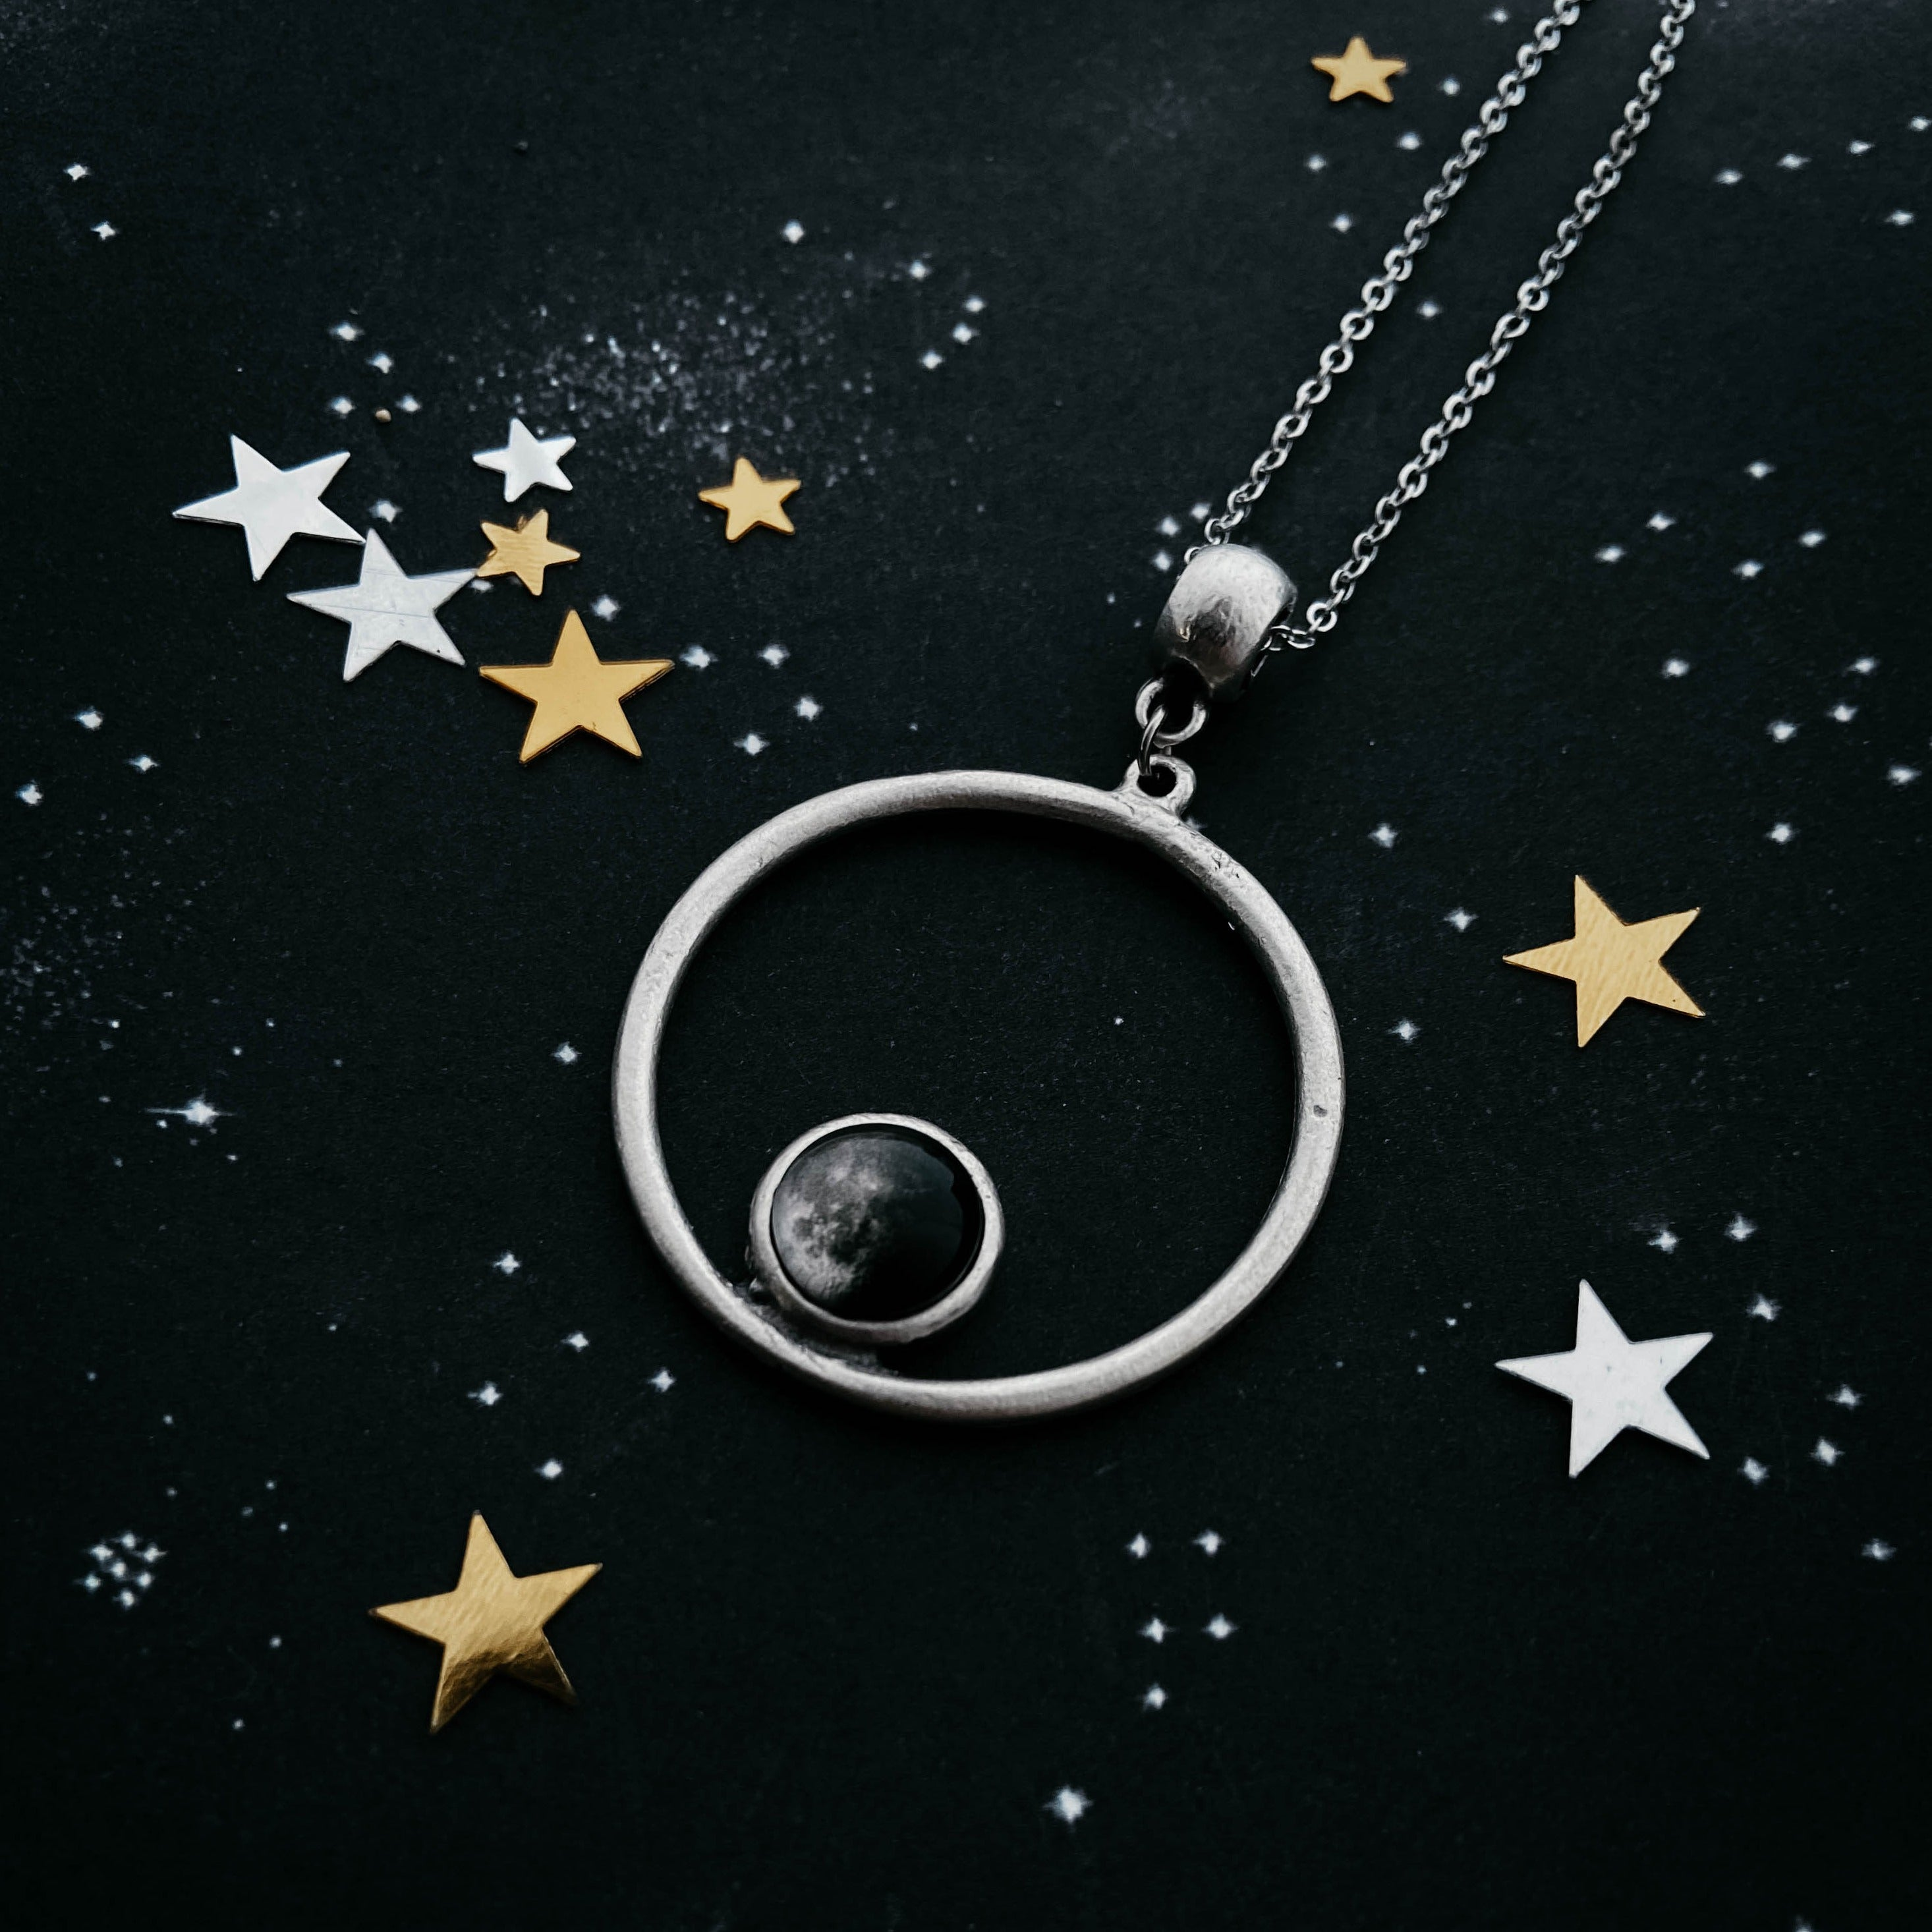 Custom Moon Phase Necklace - Circle Silver Matte Brushed Pendant with Custom Phase of the Moon - Moonglow Yugen Handmade